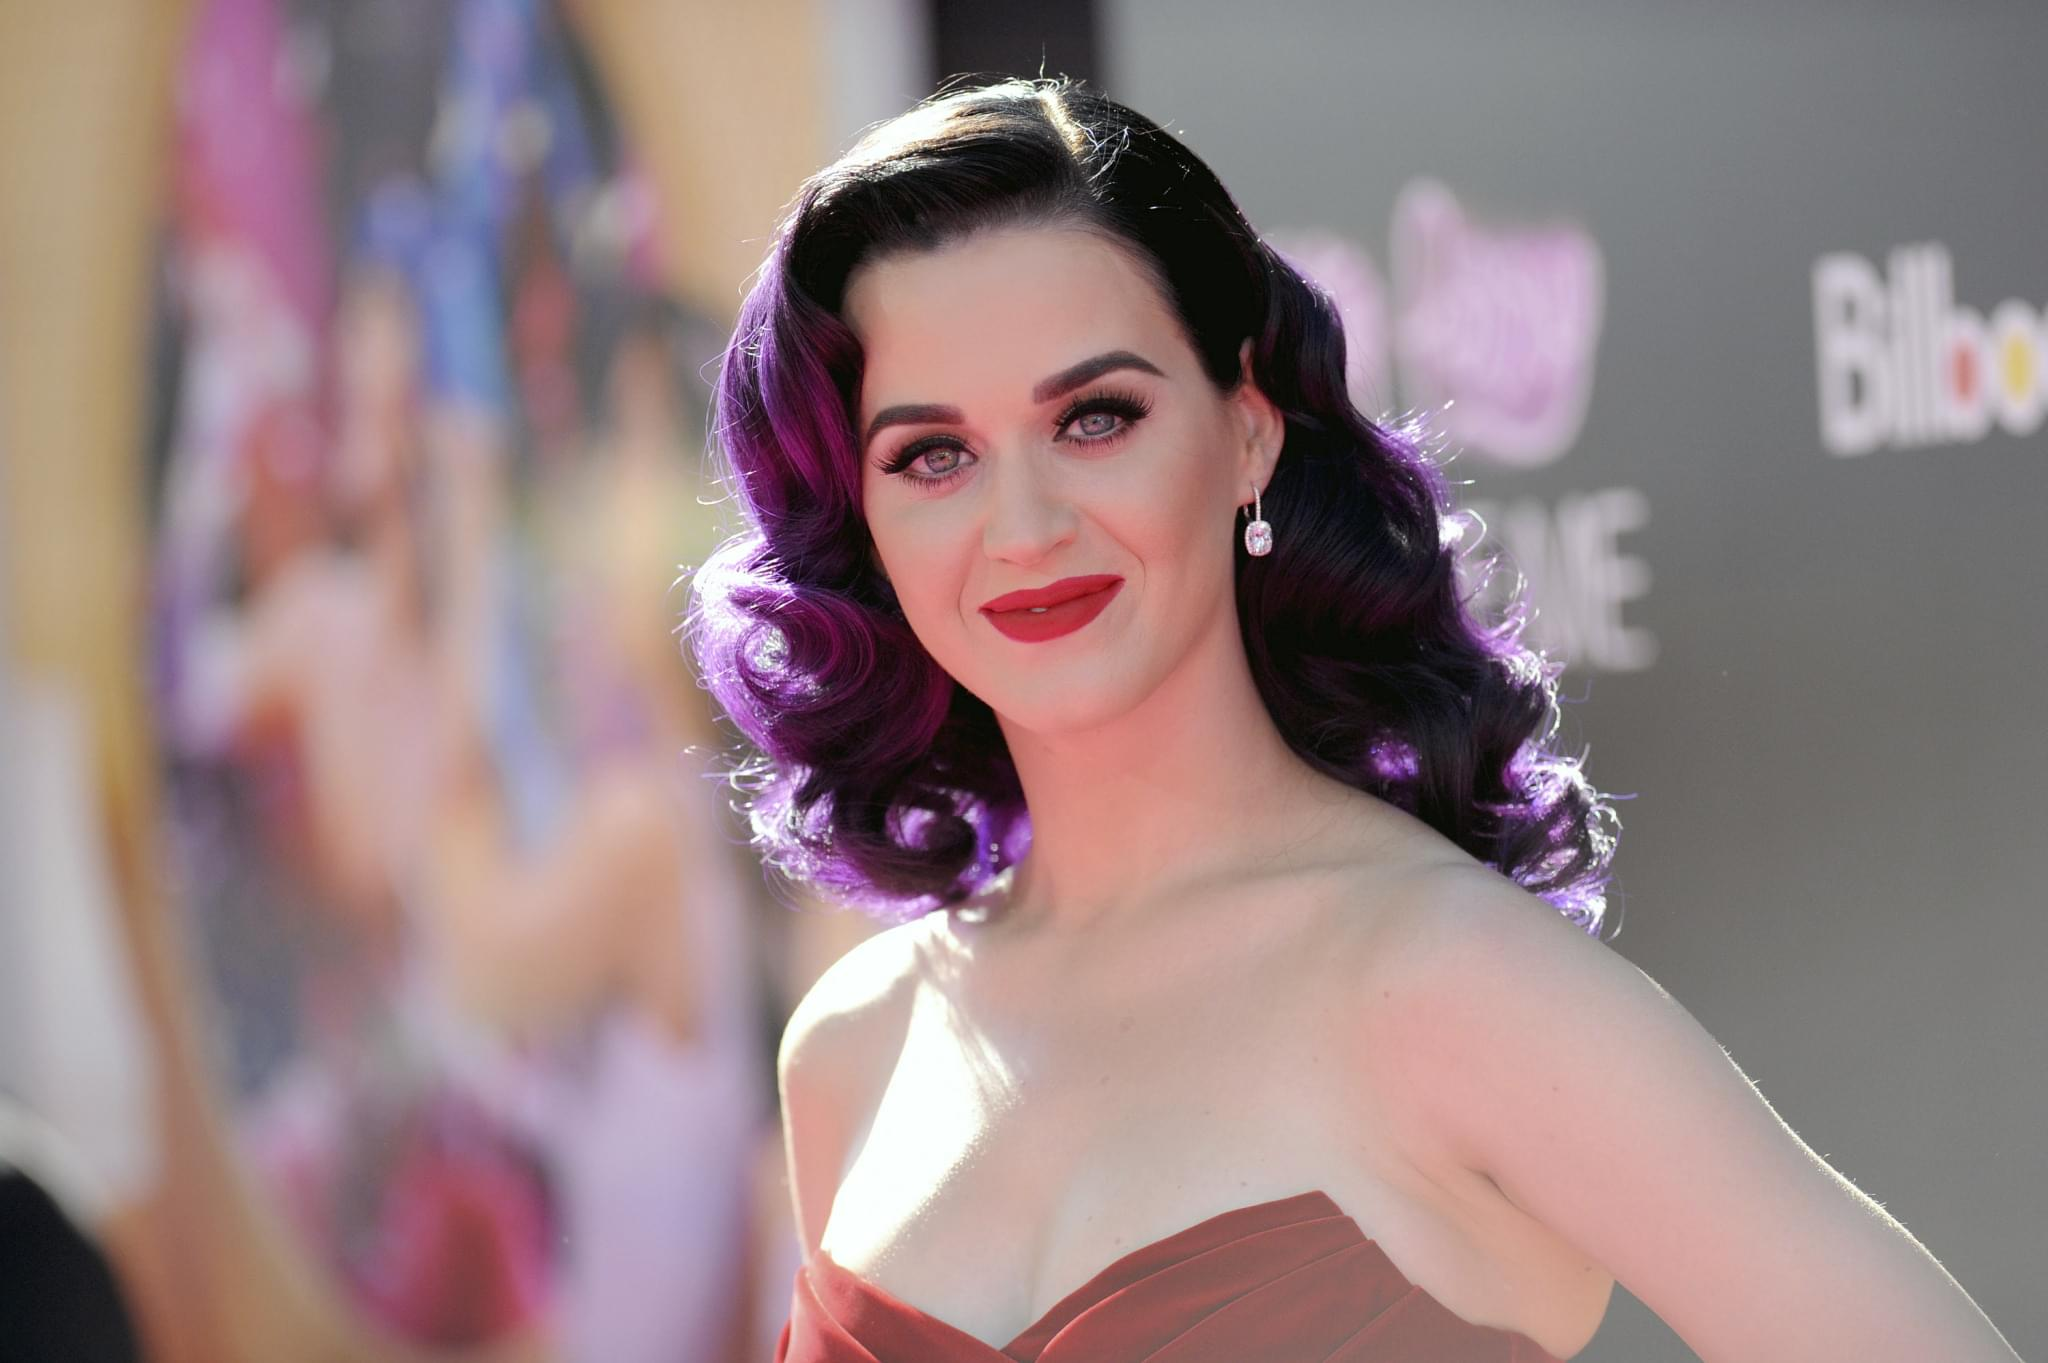 """Katy Perry Gives Birth to a Baby Girl """"Daisy Dove Bloom"""""""